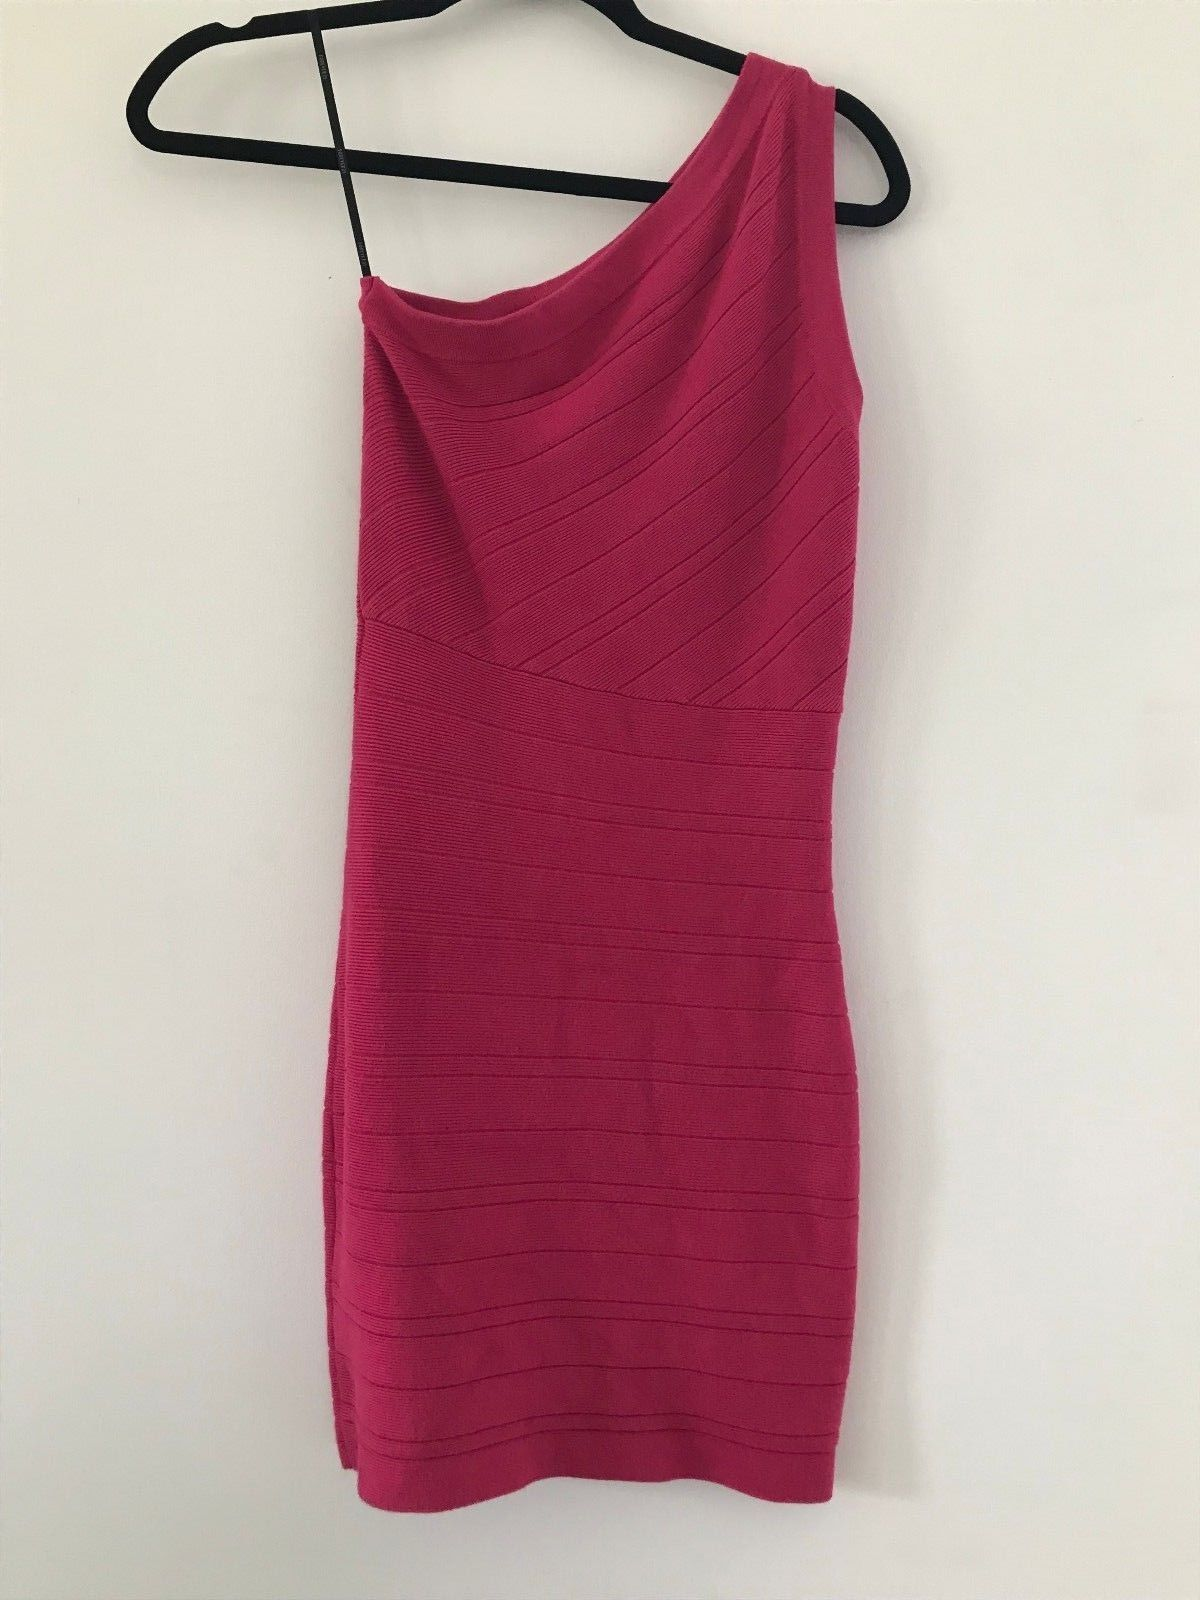 FOREVER 21 Pink Knit Bodycon Dress One Shoulder Size Small - $9.95